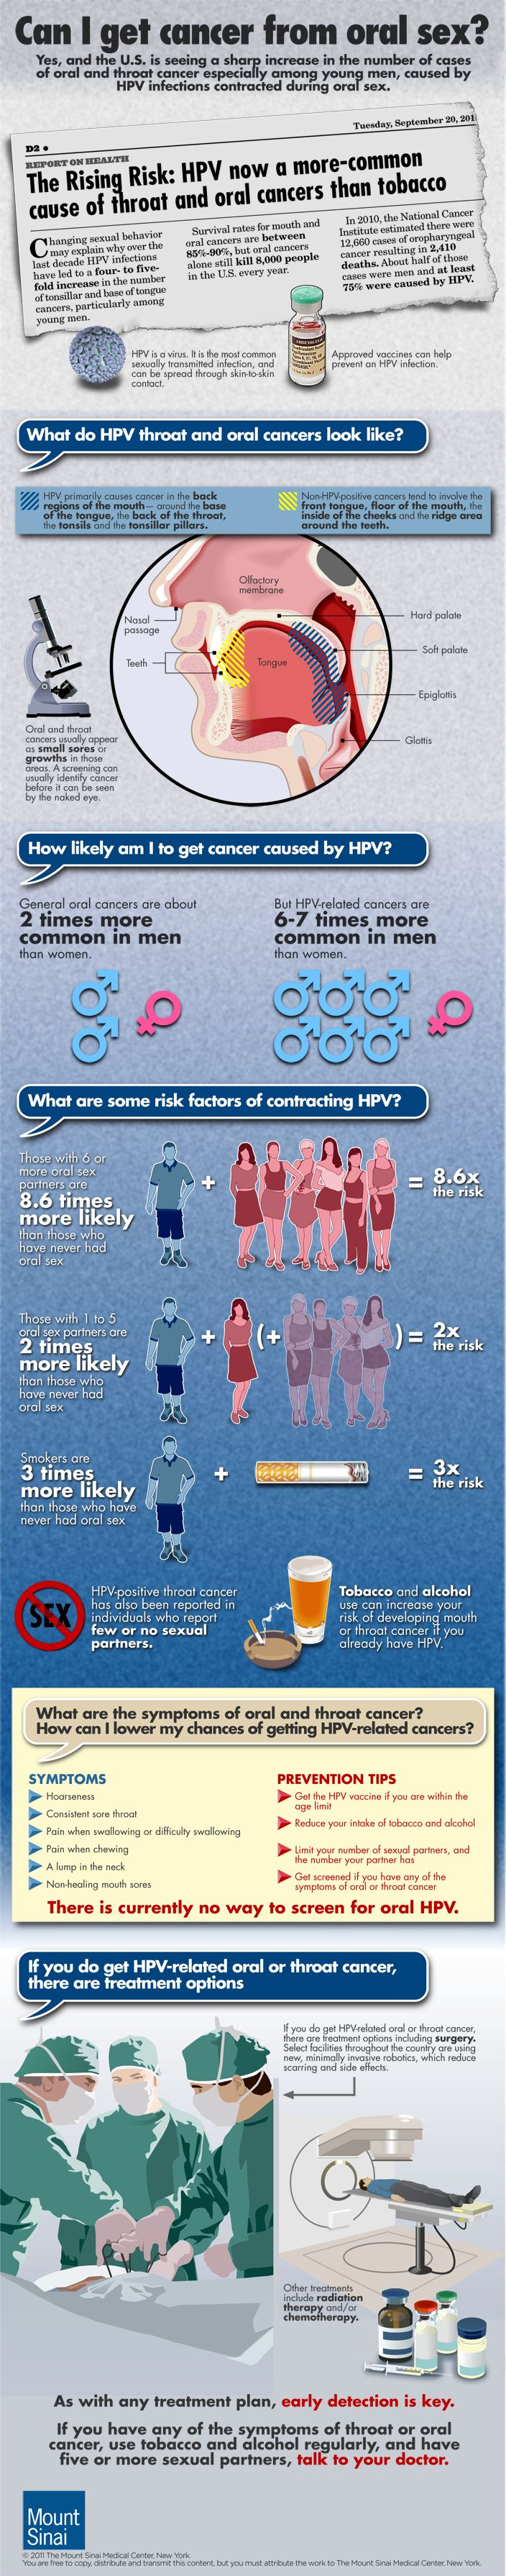 Can I Get Cancer From Oral Sex?  HPV and head/neck cancer.    http://www.huffingtonpost.com/2013/01/14/hpv-oral-sex-throat-cancer-infographic_n_2441521.html#